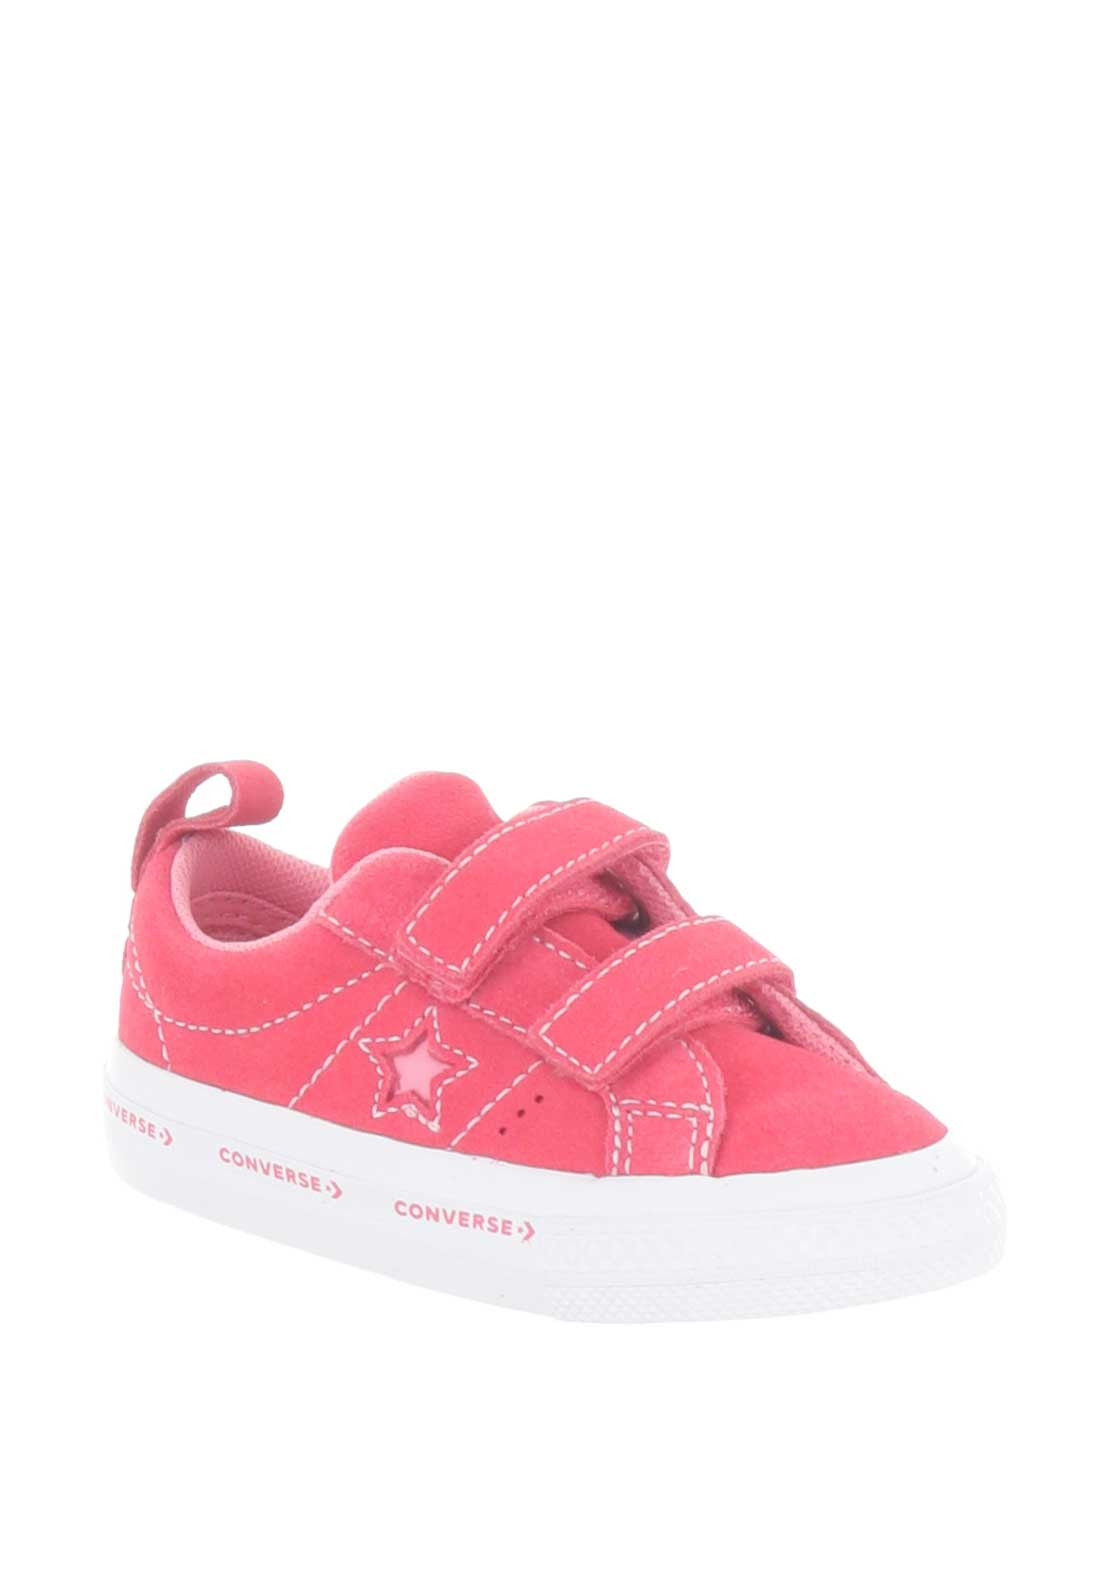 Converse Baby Girls One Star Suede Trainers, Pink